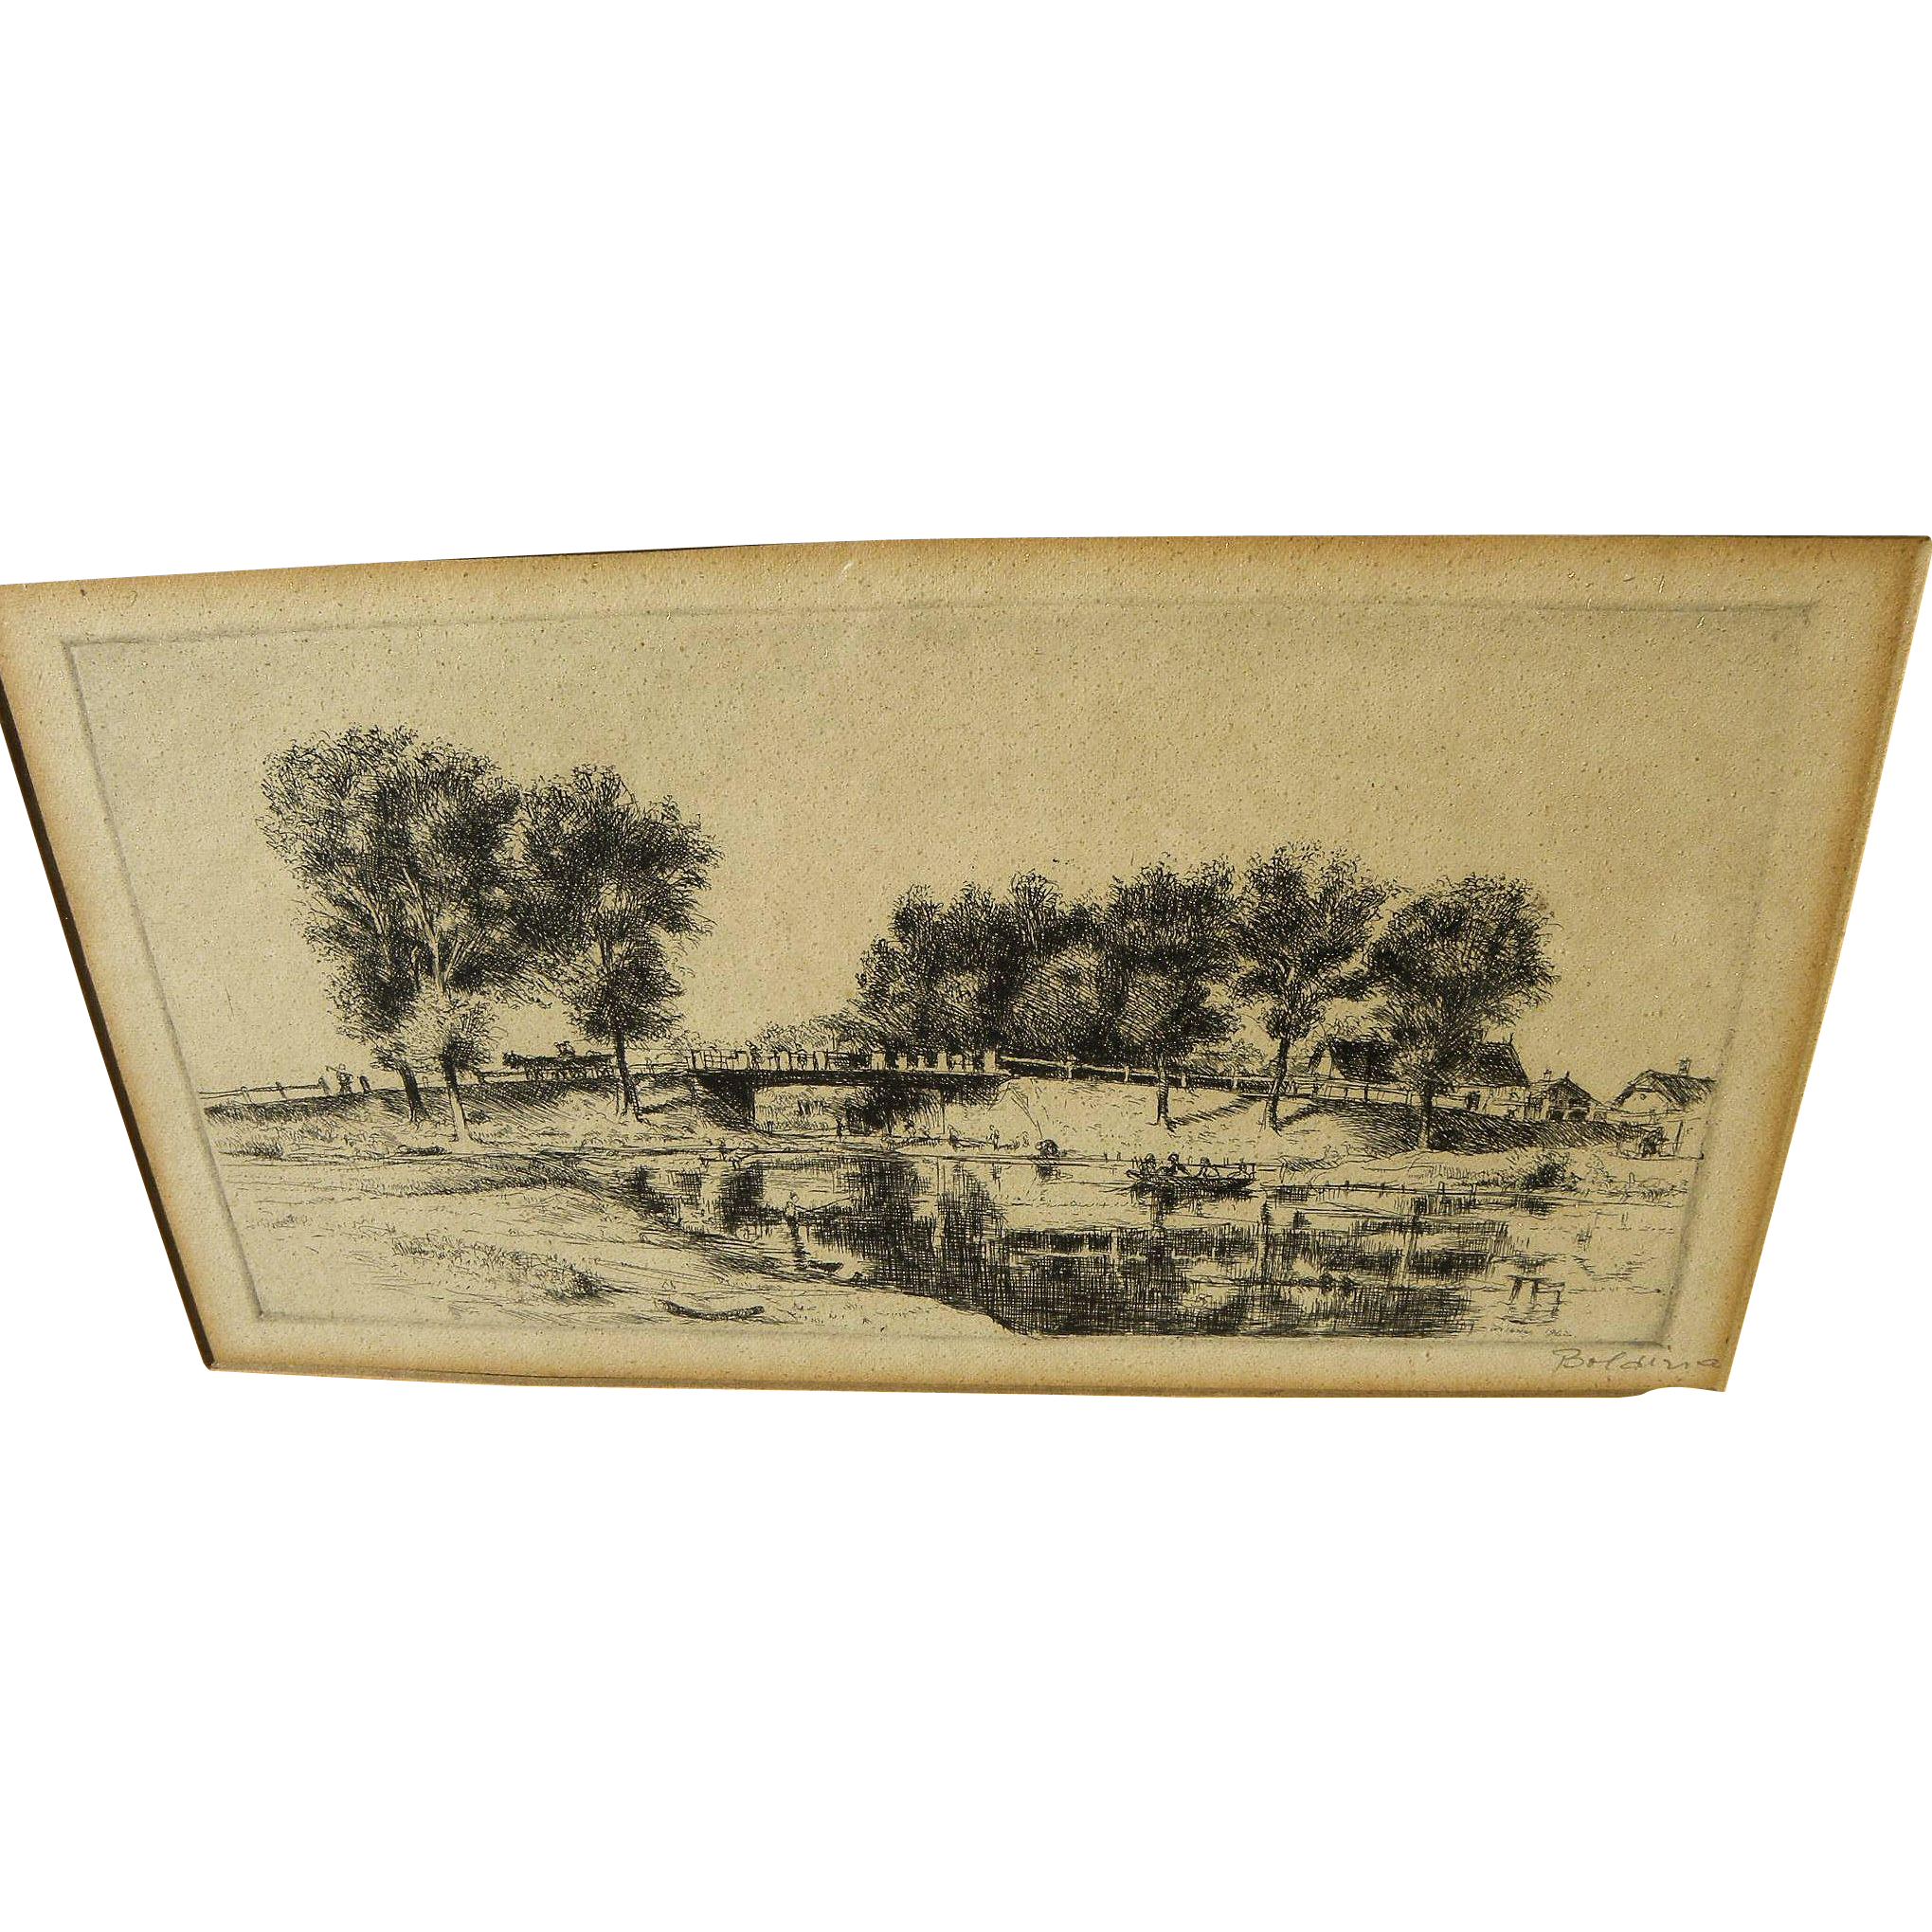 ISTVAN BOLDIZSAR (1897-1984) pencil signed landscape etching by Hungarian master artist